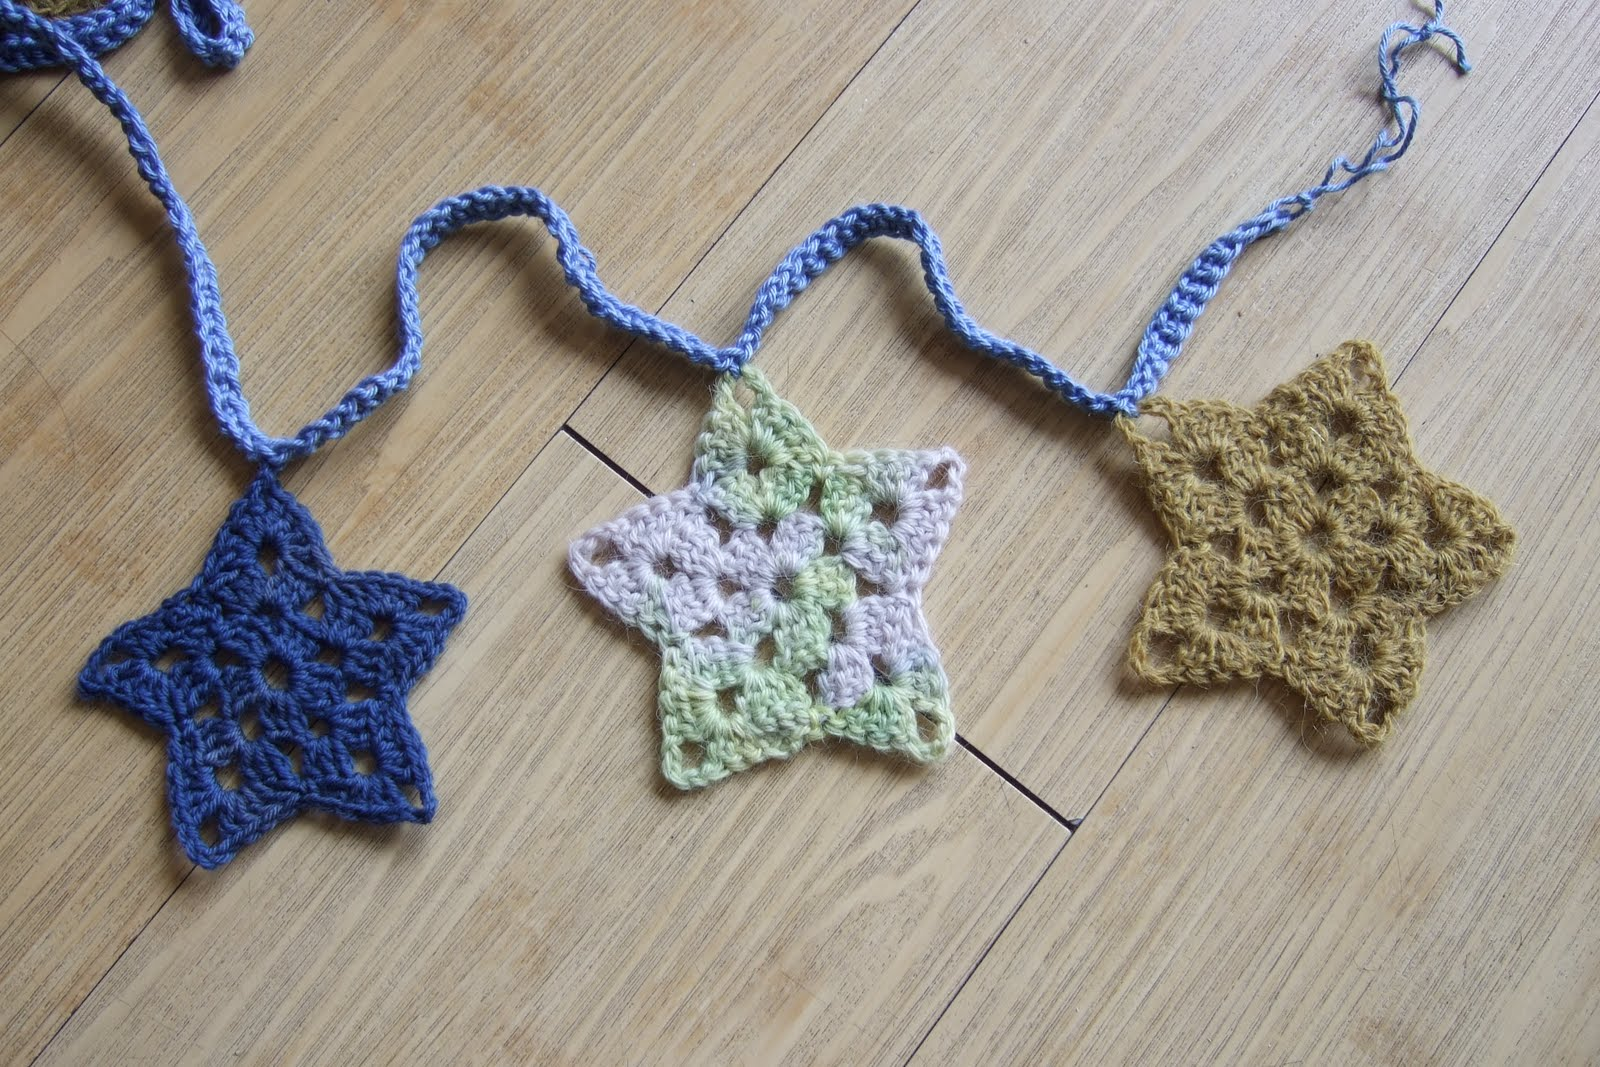 How to Crochet a Star - Ask.com